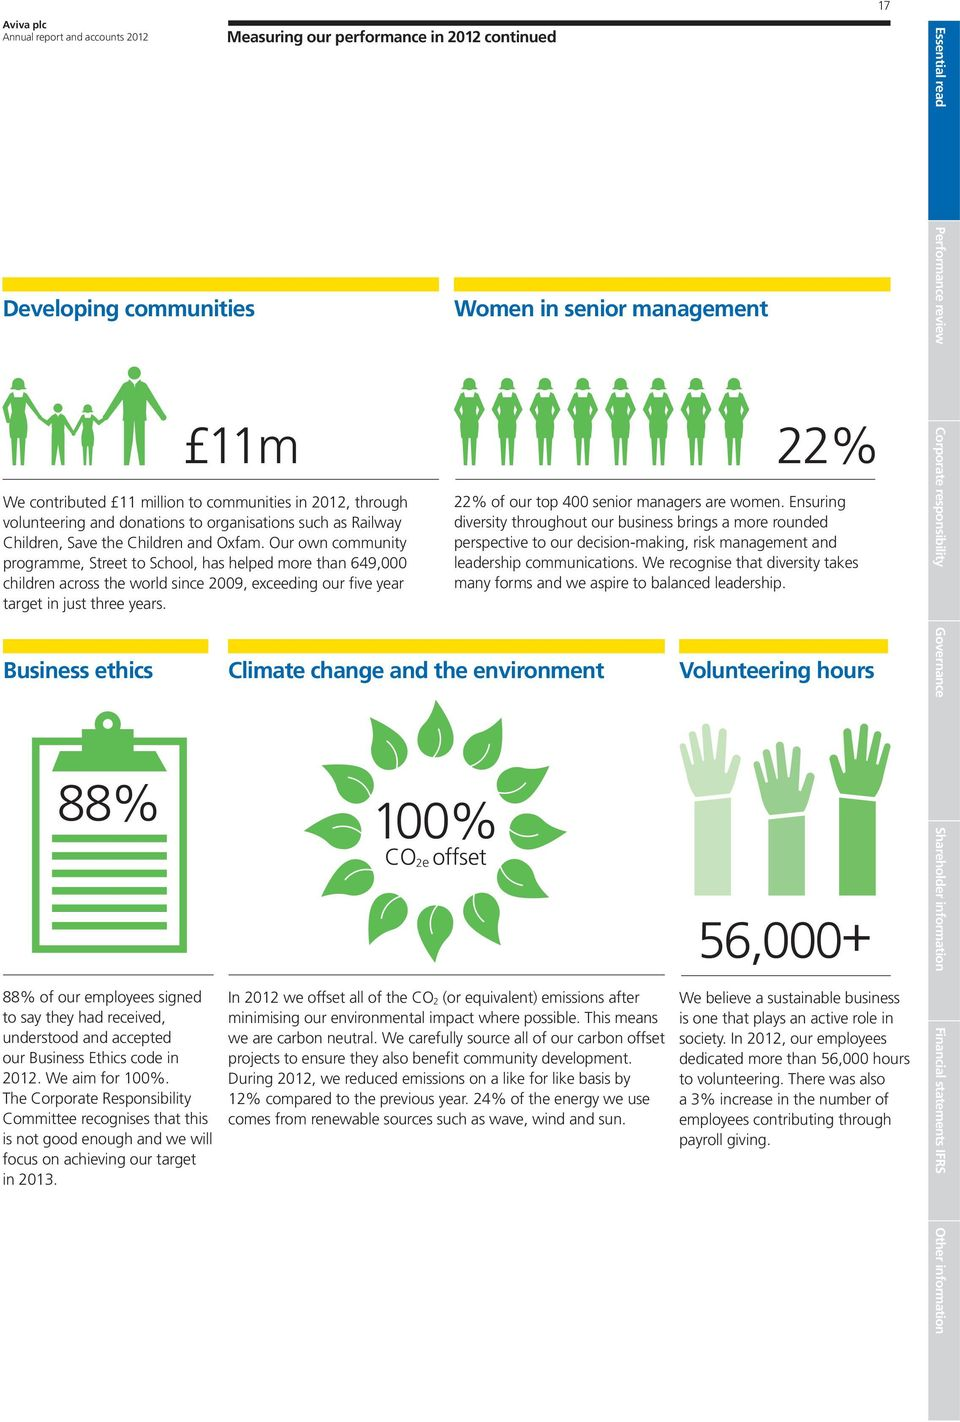 Measuring our performance in 2012 continued We contributed 11 million to communities in 2012, through volunteering and donations to organisations such as Railway Children, Save the Children and Oxfam.